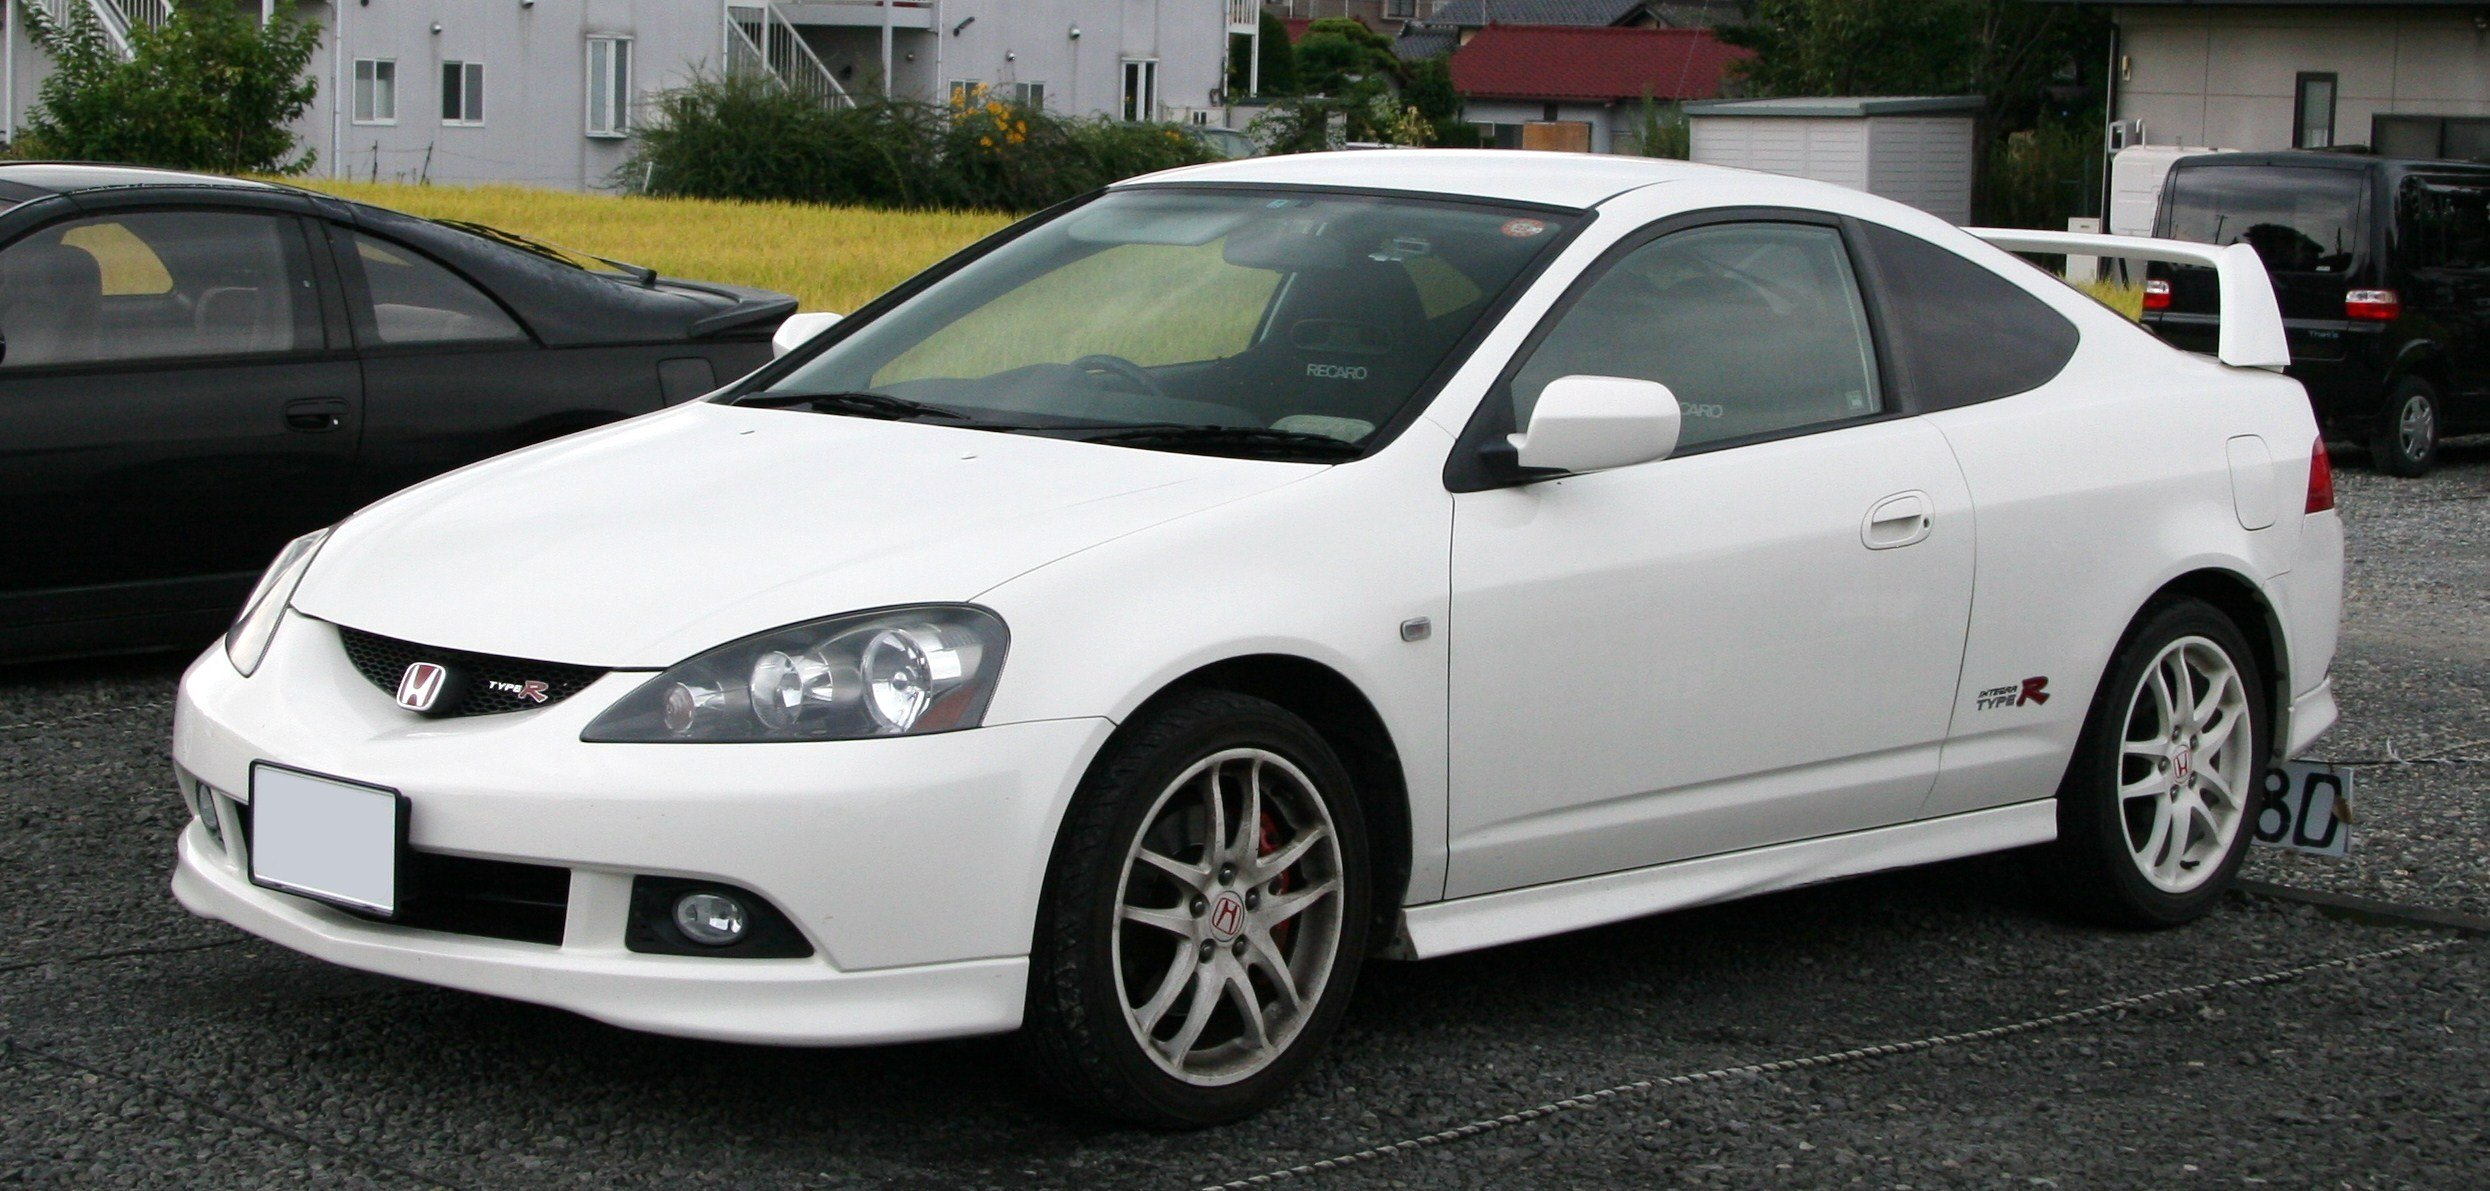 honda integra coupe (dc5) 2003 images